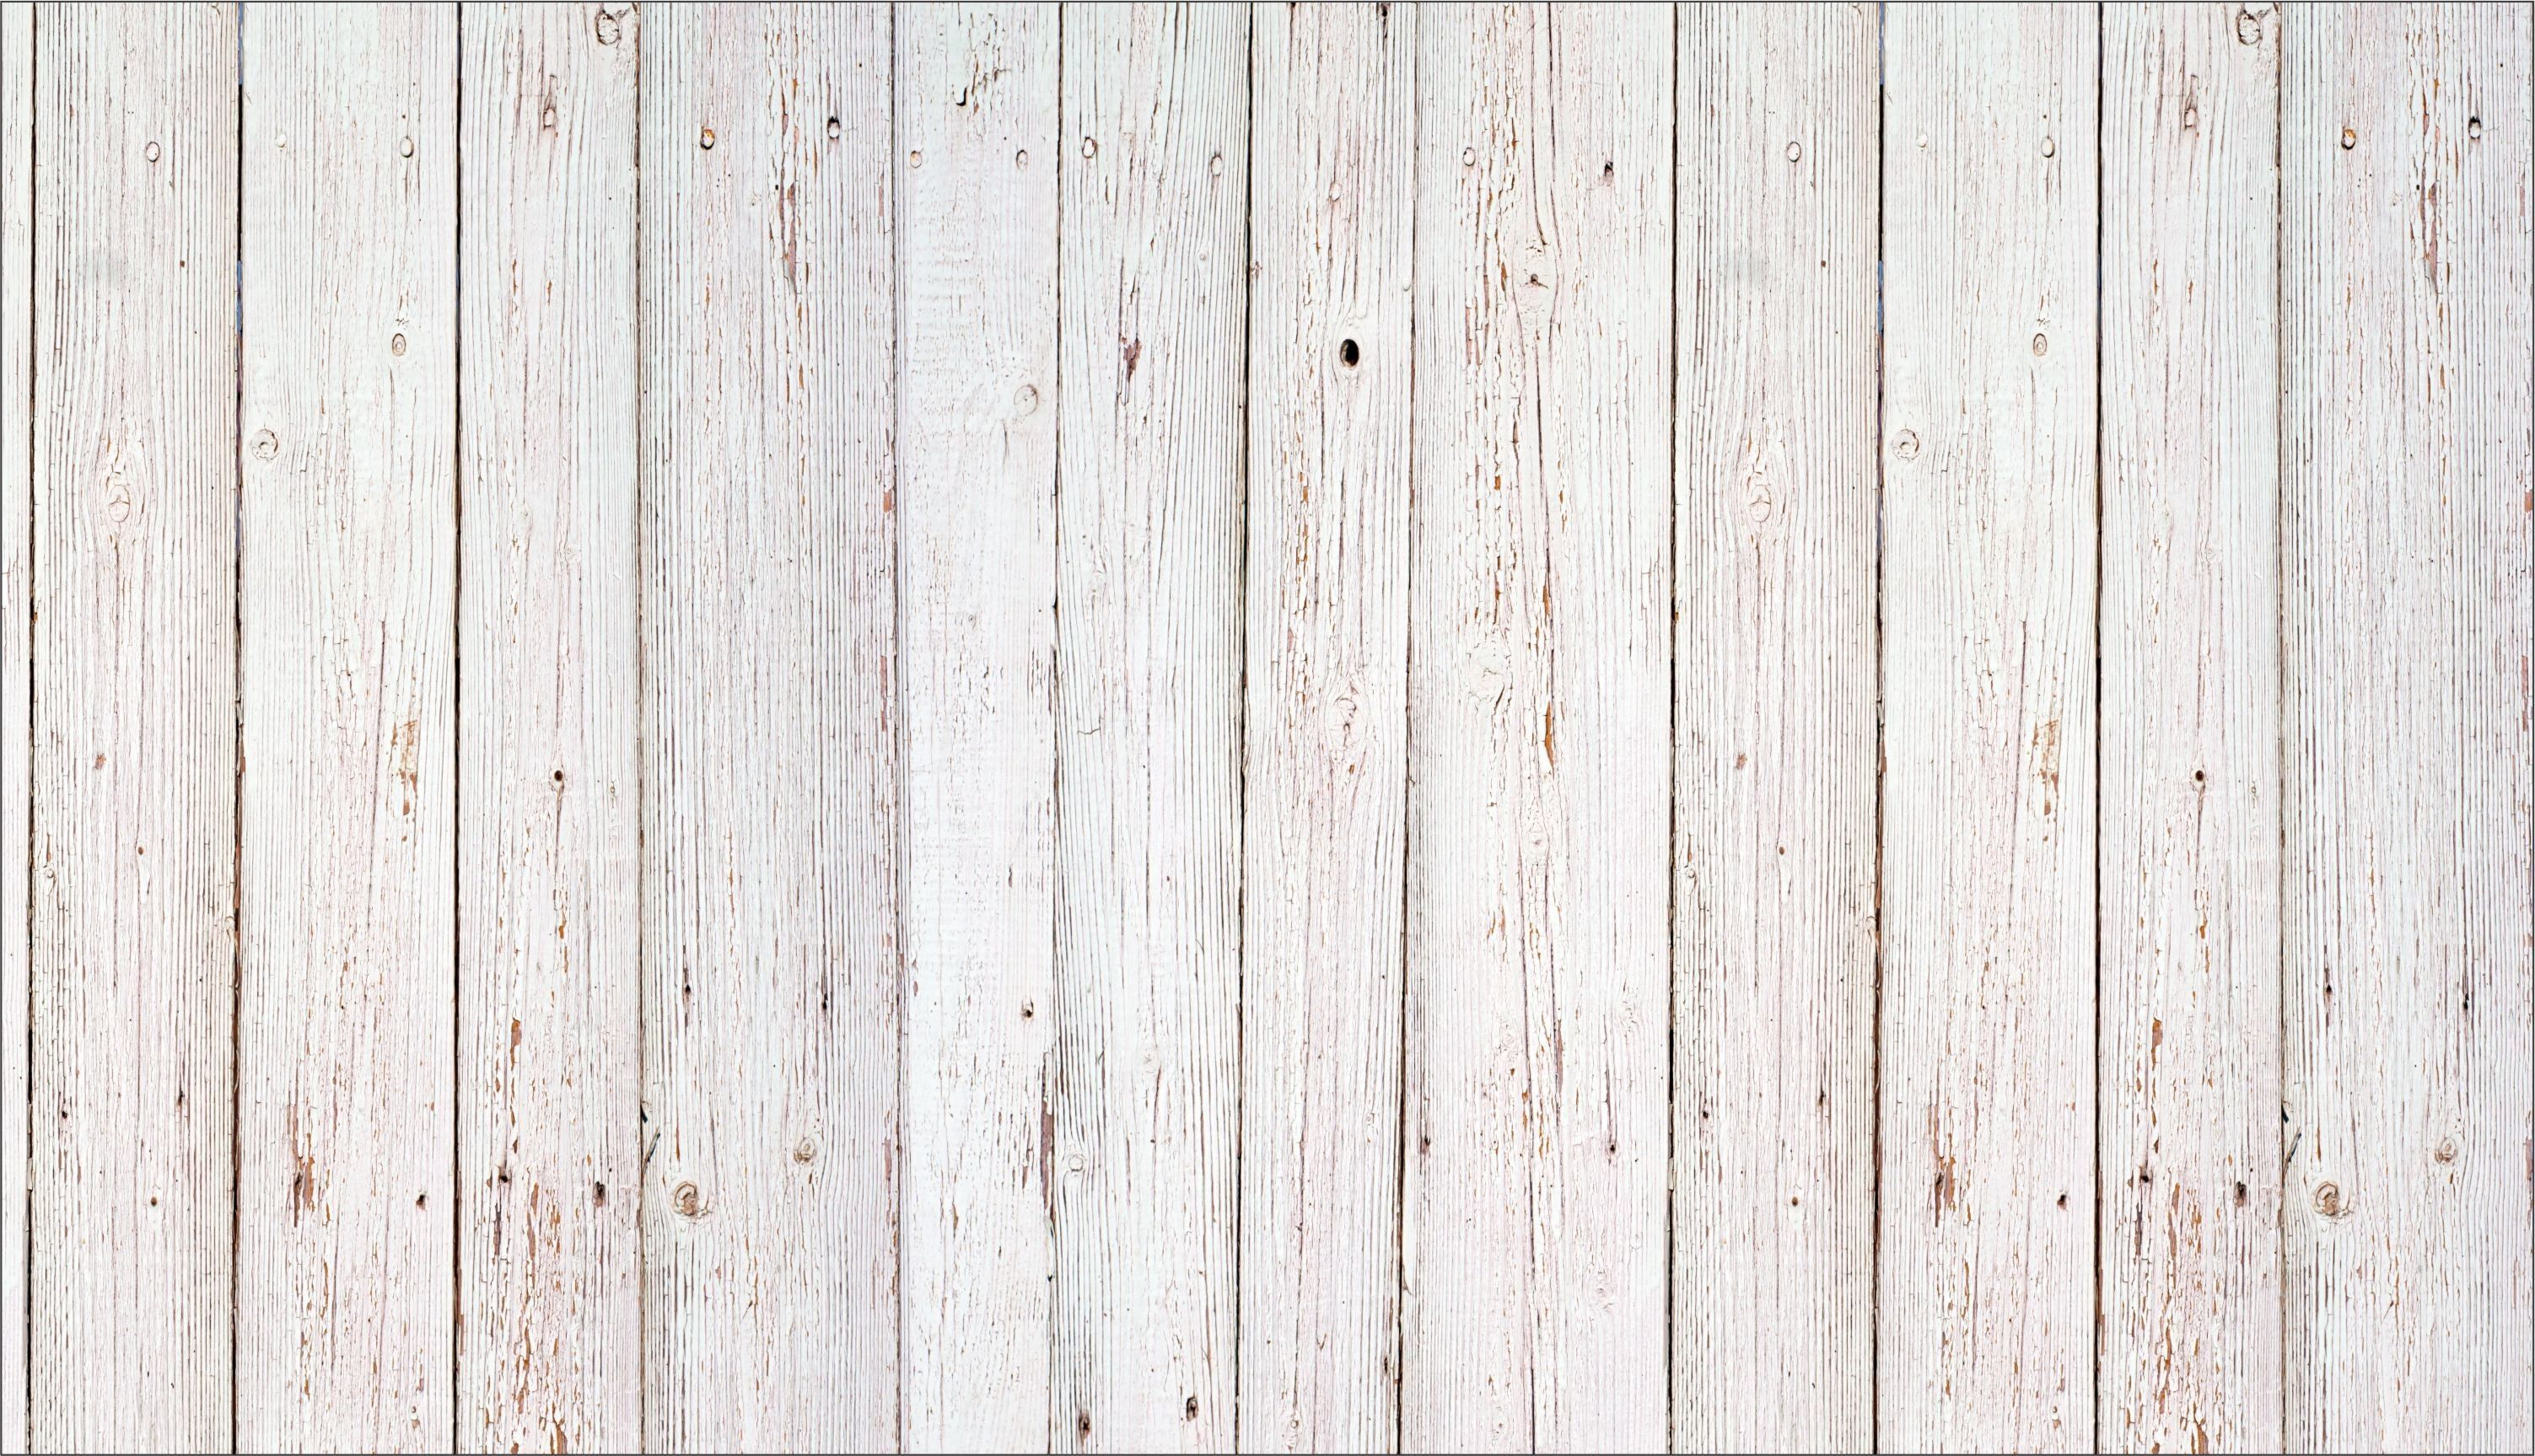 Res 3006x1727 White Wood Hd Wallpaper Desktop Background Rpt Px 1 07 Mb Abstractrustic Wood Repeatabl White Wood Texture White Wood Floors Wood Wallpaper